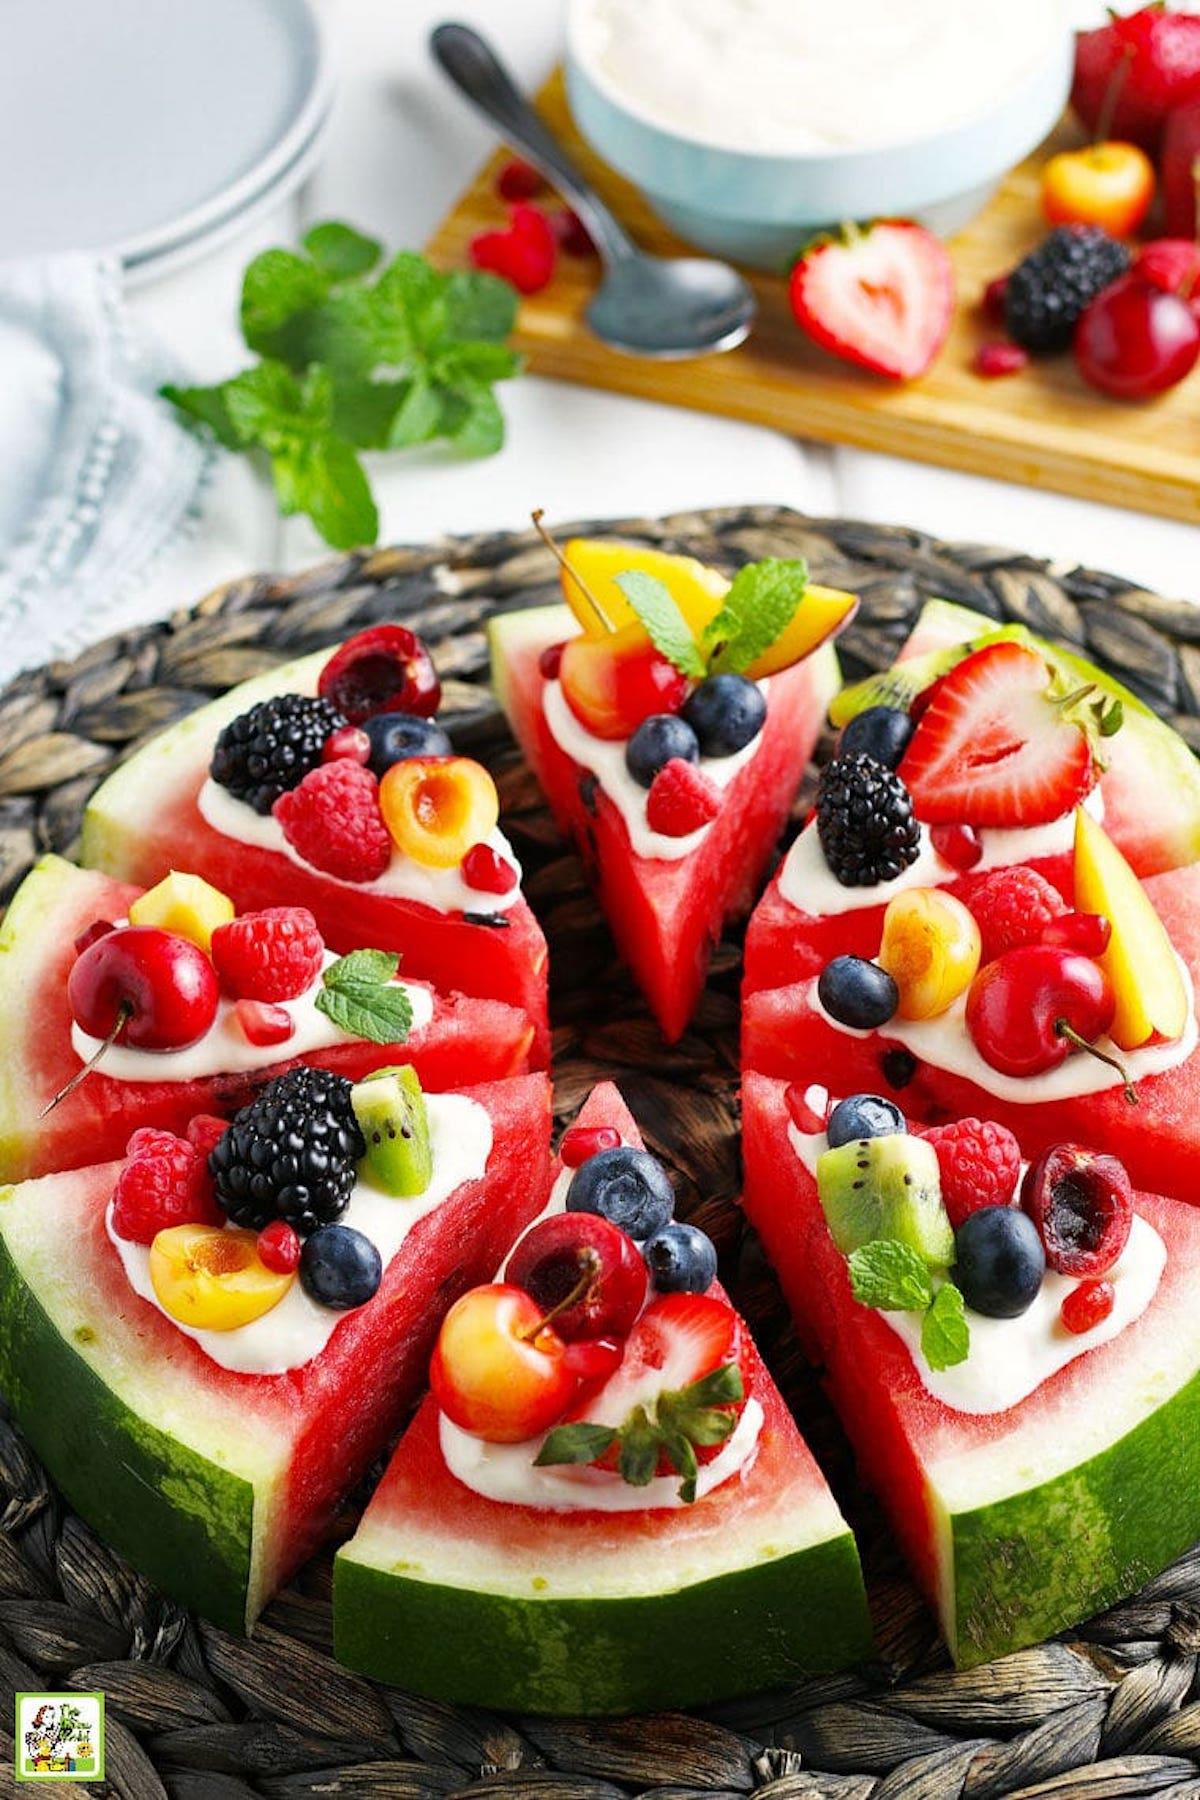 Eight watermelon slices are in the shape of a pizza. Each slice is topped with Greek yogurt then fresh fruit.